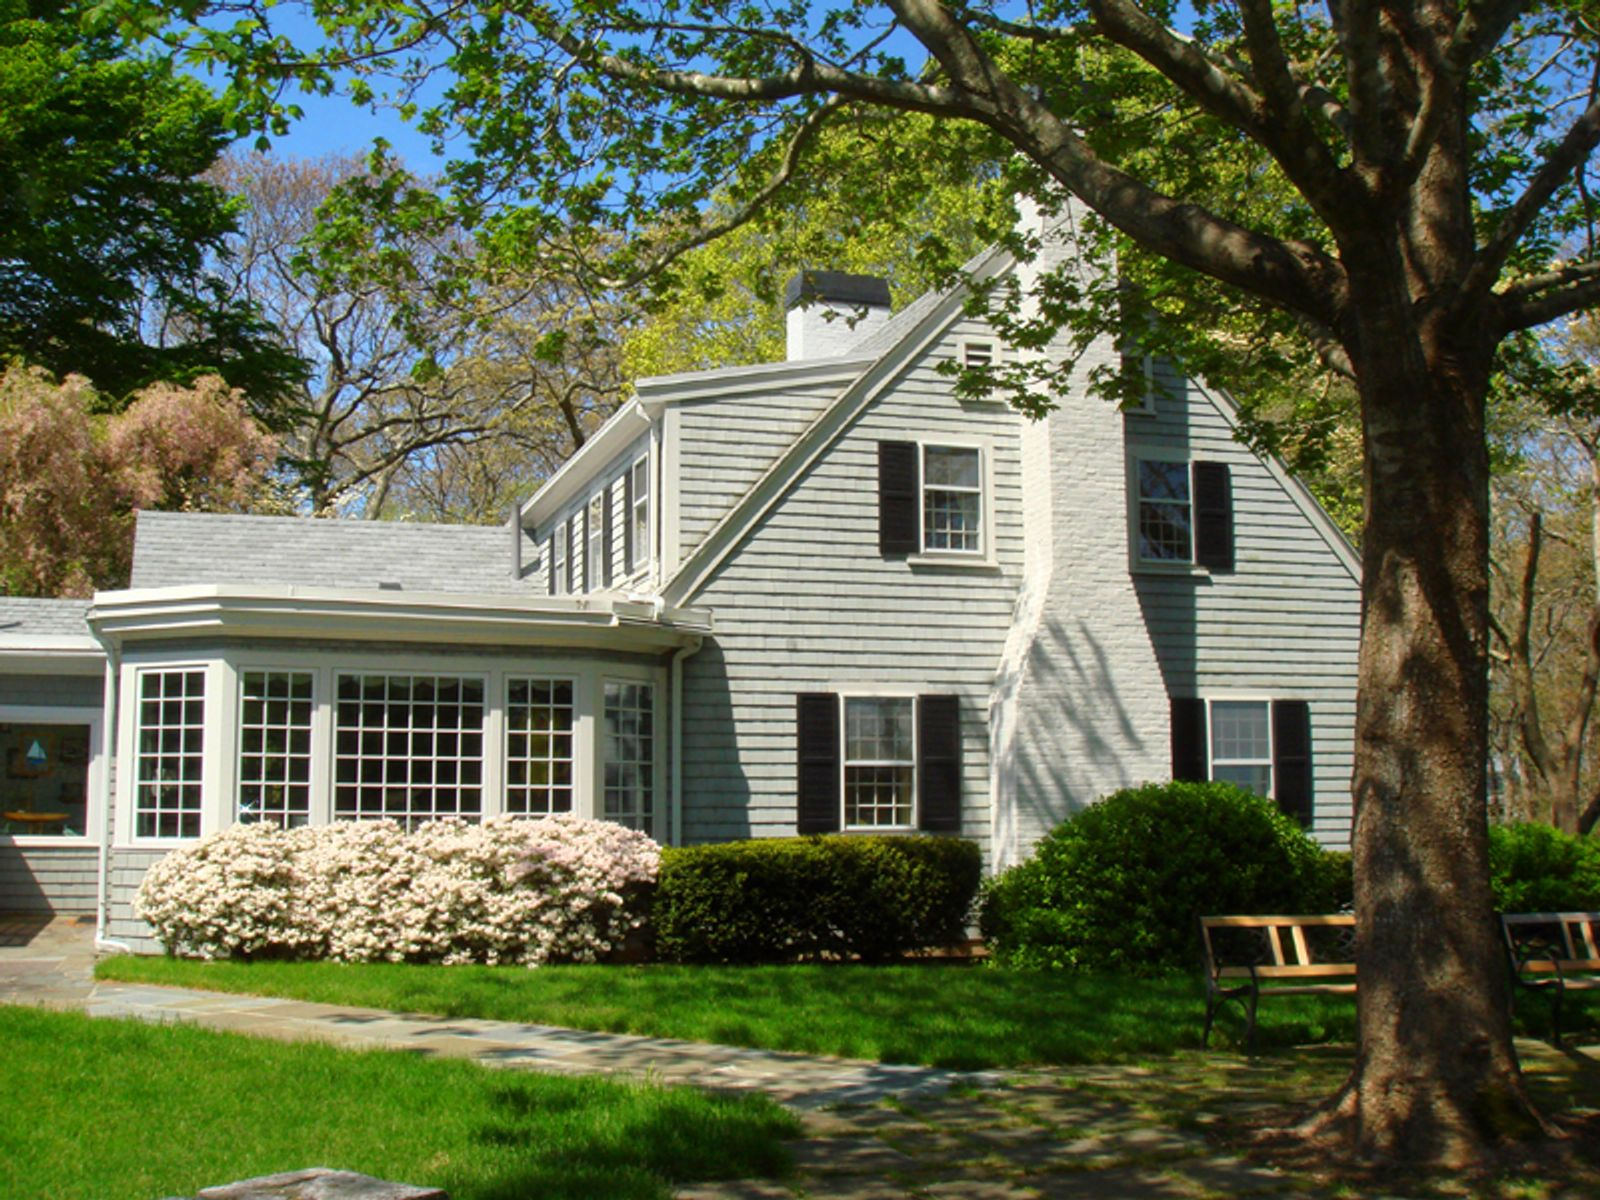 Quissett Harbor Views, Woods Hole MA Single Family Home - Cape Cod Real Estate